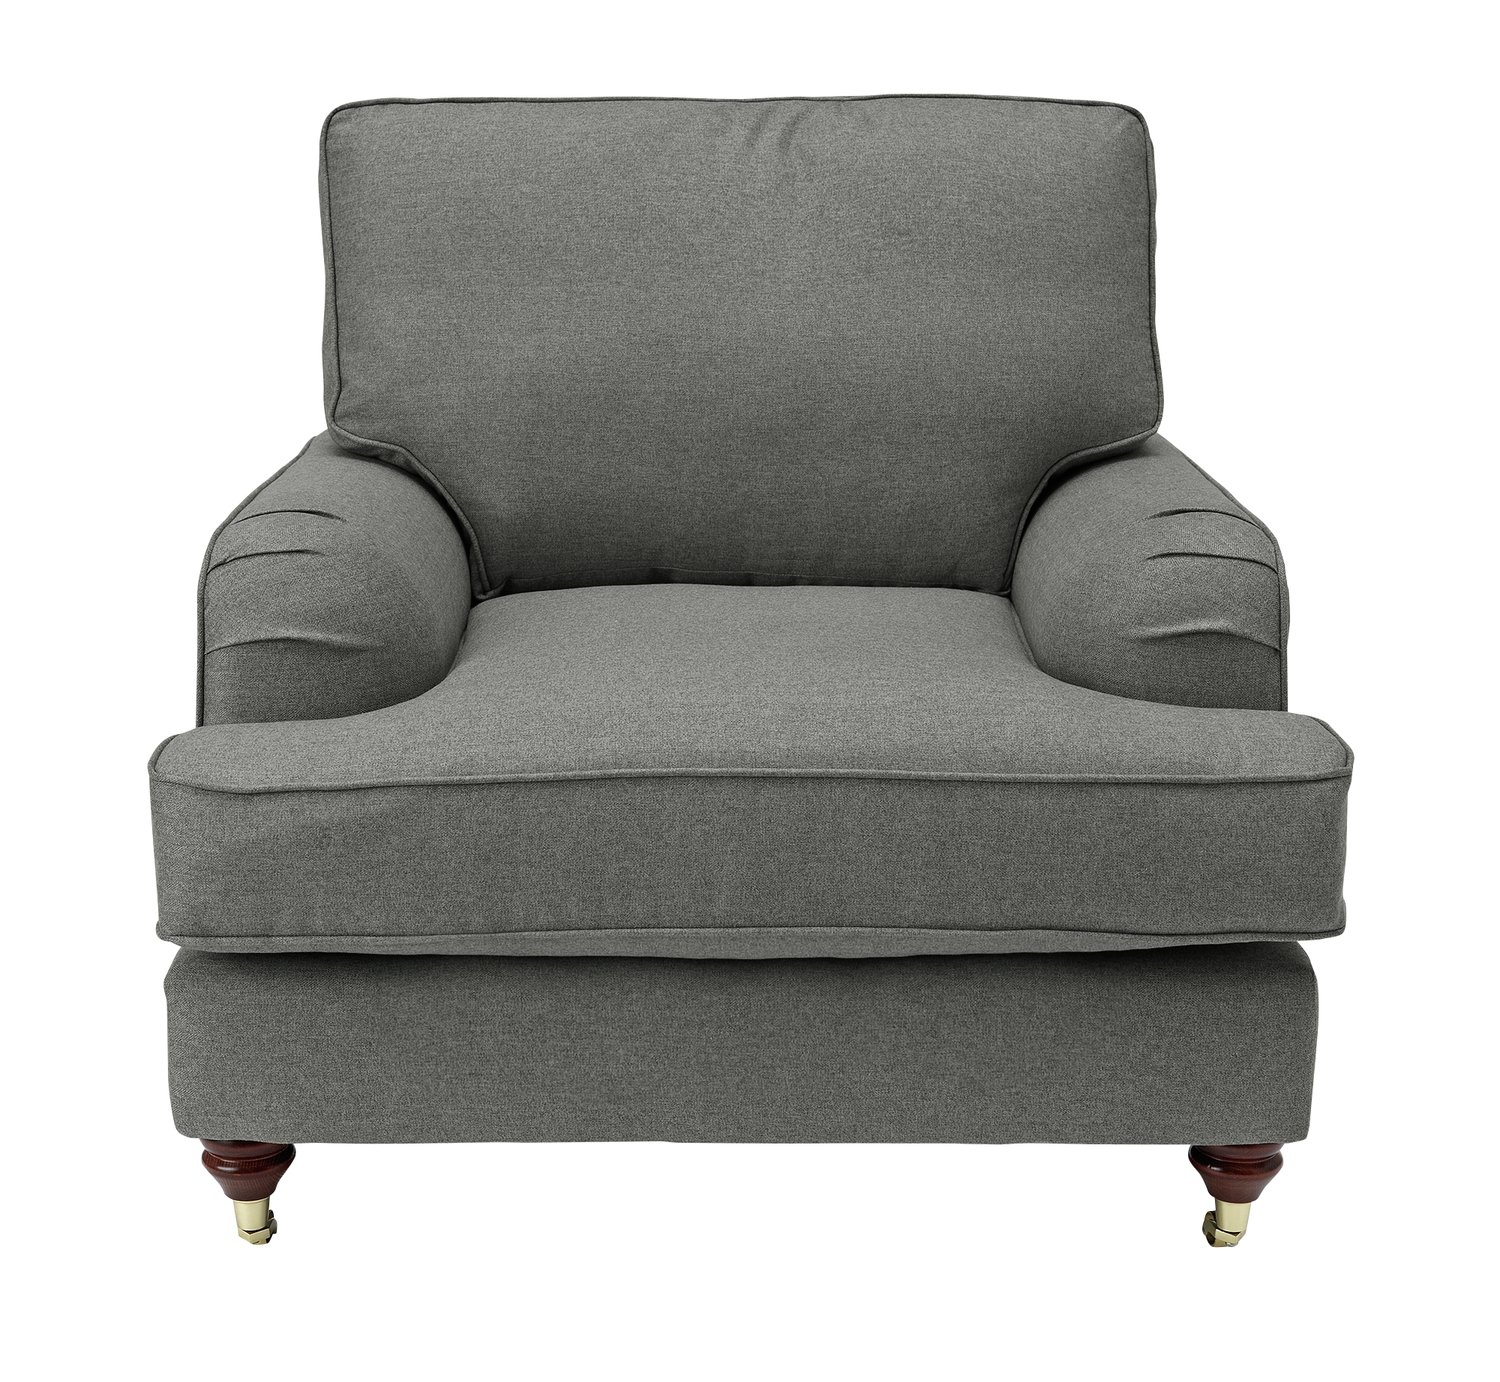 Image of Heart of House Abberton Fabric Chair - Light Grey Tweed